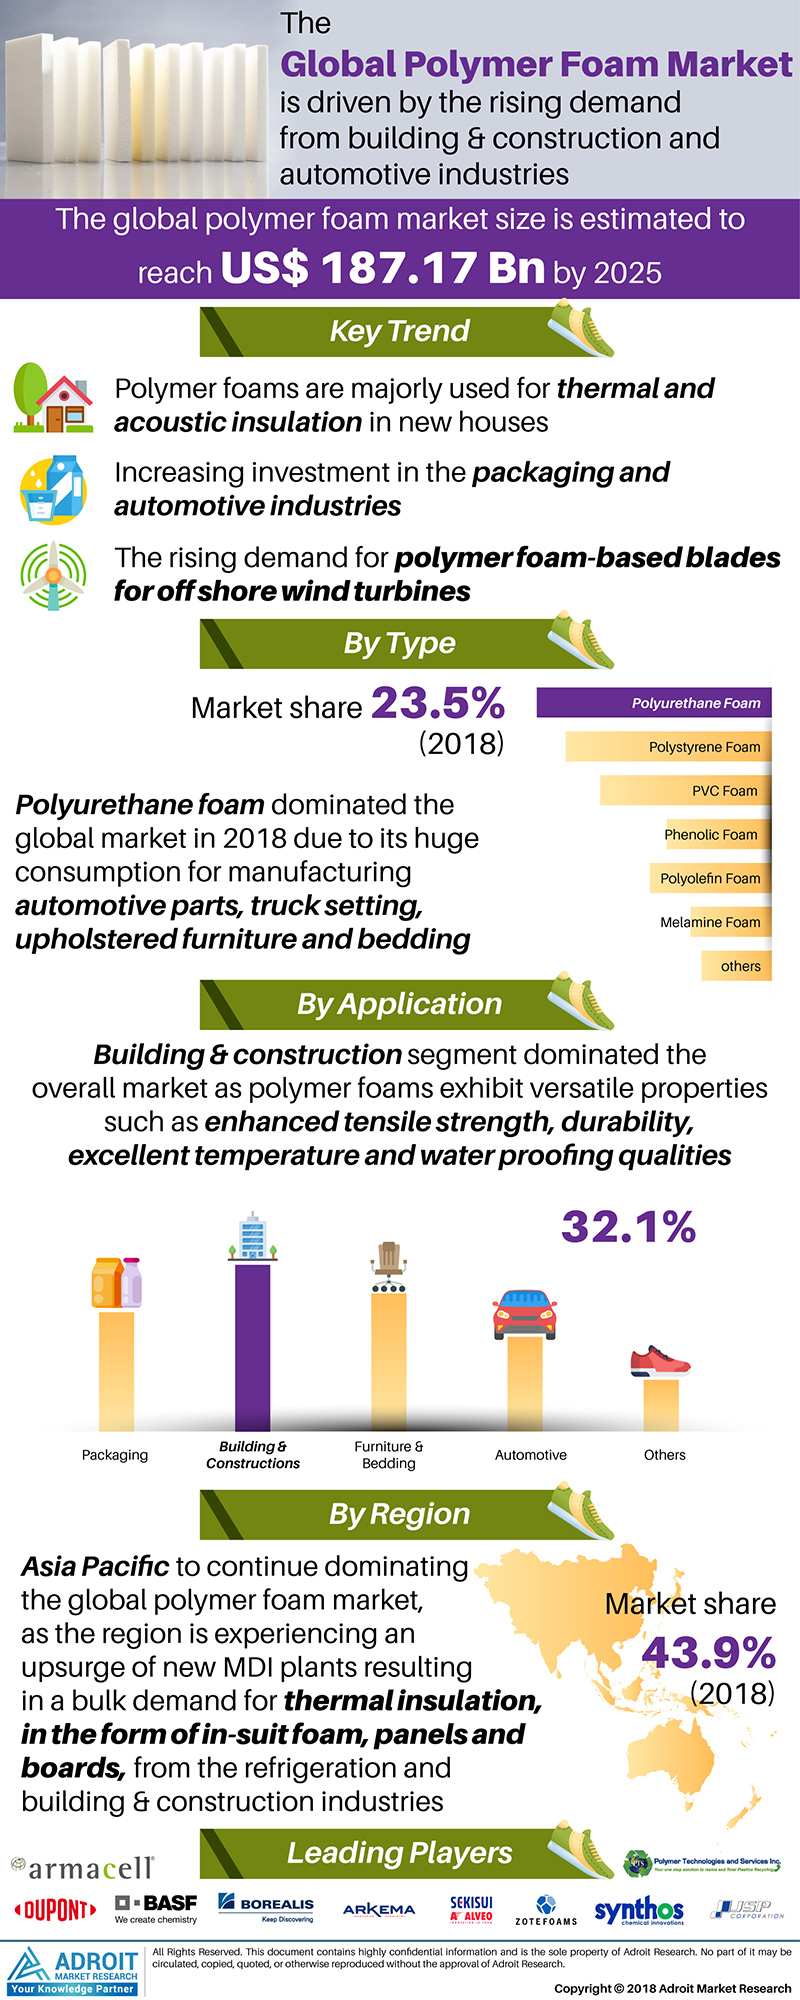 Global Polymer Foams Market Size by Applications, Type, Region and Forecast 2018 to 2025